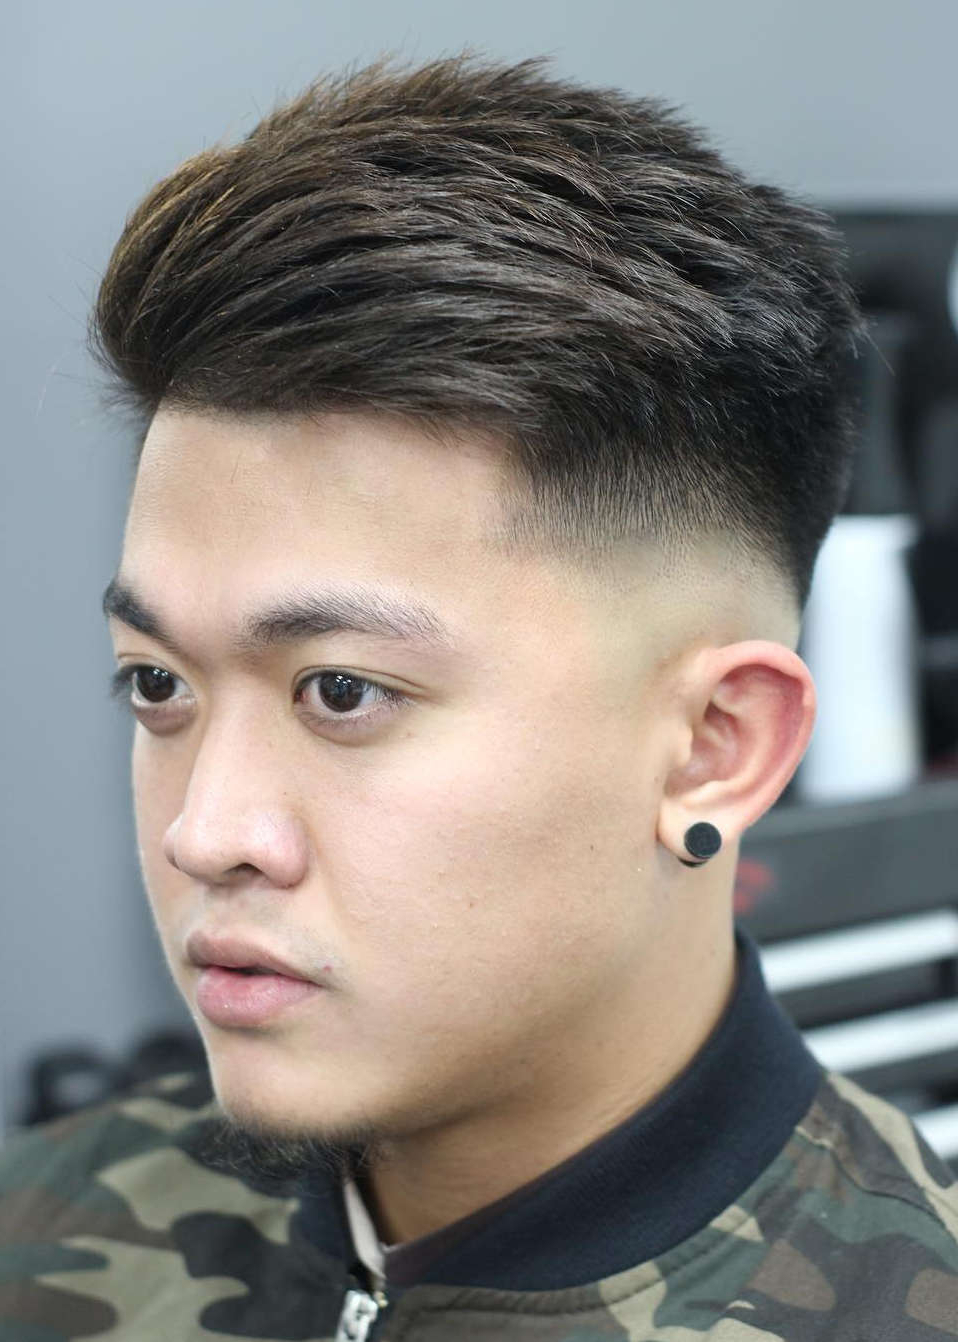 Top 30 Trendy Asian Men Hairstyles 2019 Intended For Popular Classic Straight Asian Hairstyles (View 6 of 20)